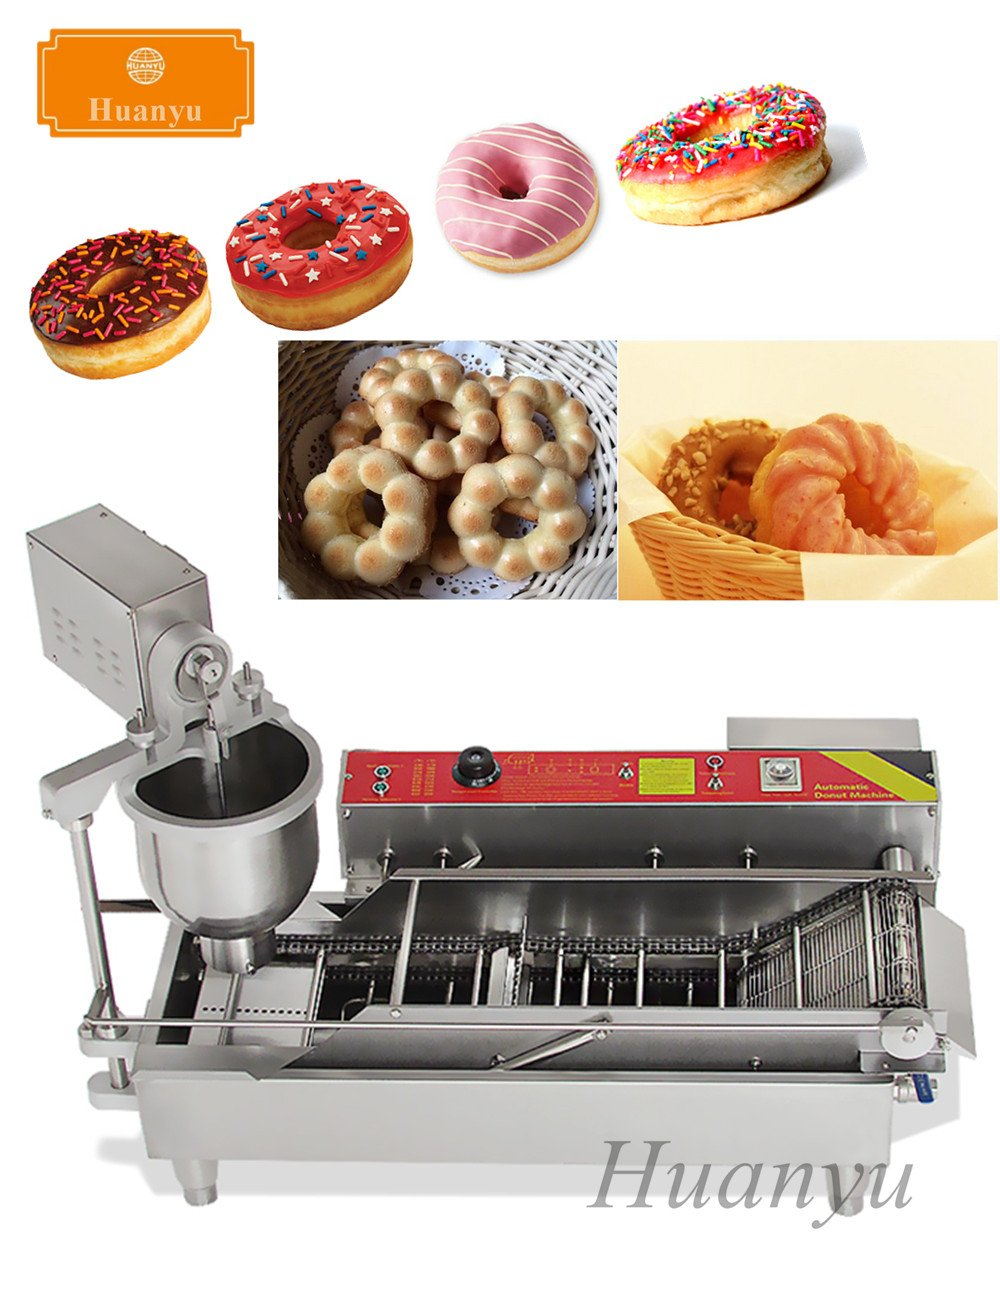 Huanyu NP-1 Auto Donut Making Machine 7L Commercial Electric Cake Donut Maker, with 3 Kinds of Donut Mould (220V)